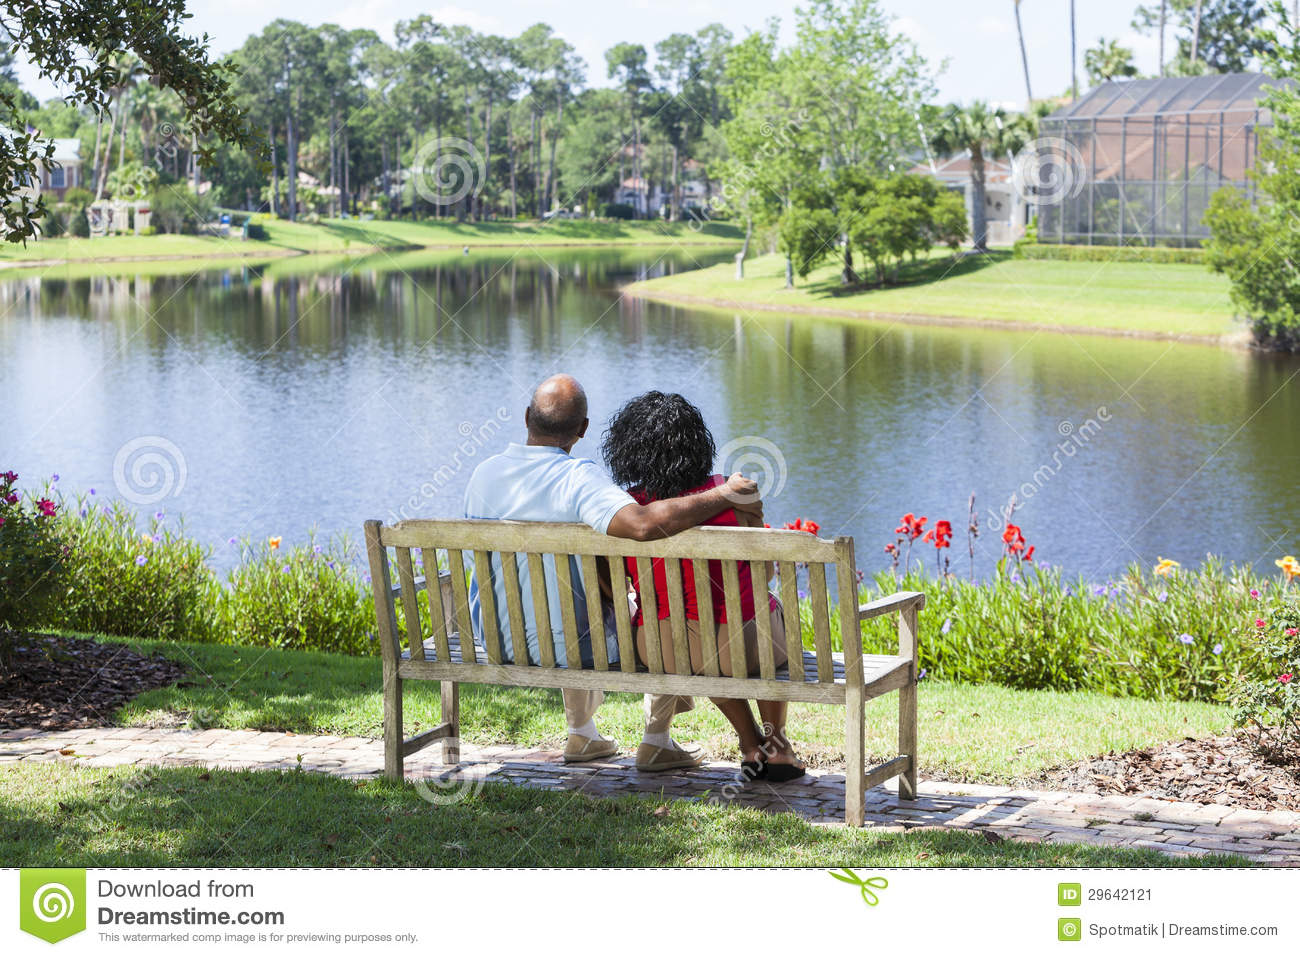 tranquility senior dating site Online dating service for singles over 50 at 50plus-clubcom 50plus-clubcom is the leading over 50 online dating site and active community for baby boomers, senior singles and singles over 50 in the united states.